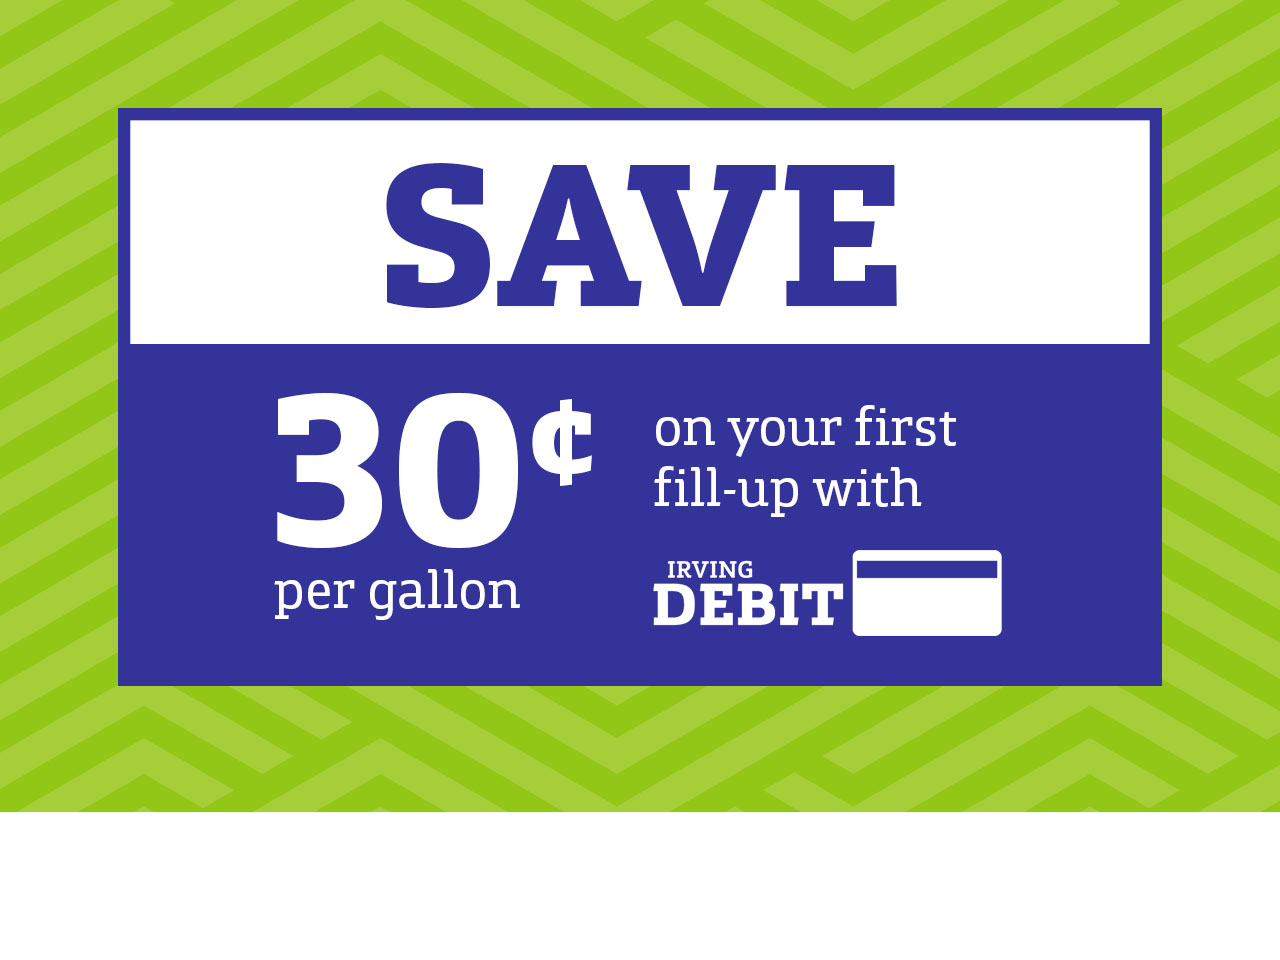 Save thirty cents per gallon on your first fill-up with Irving Debit Pay.